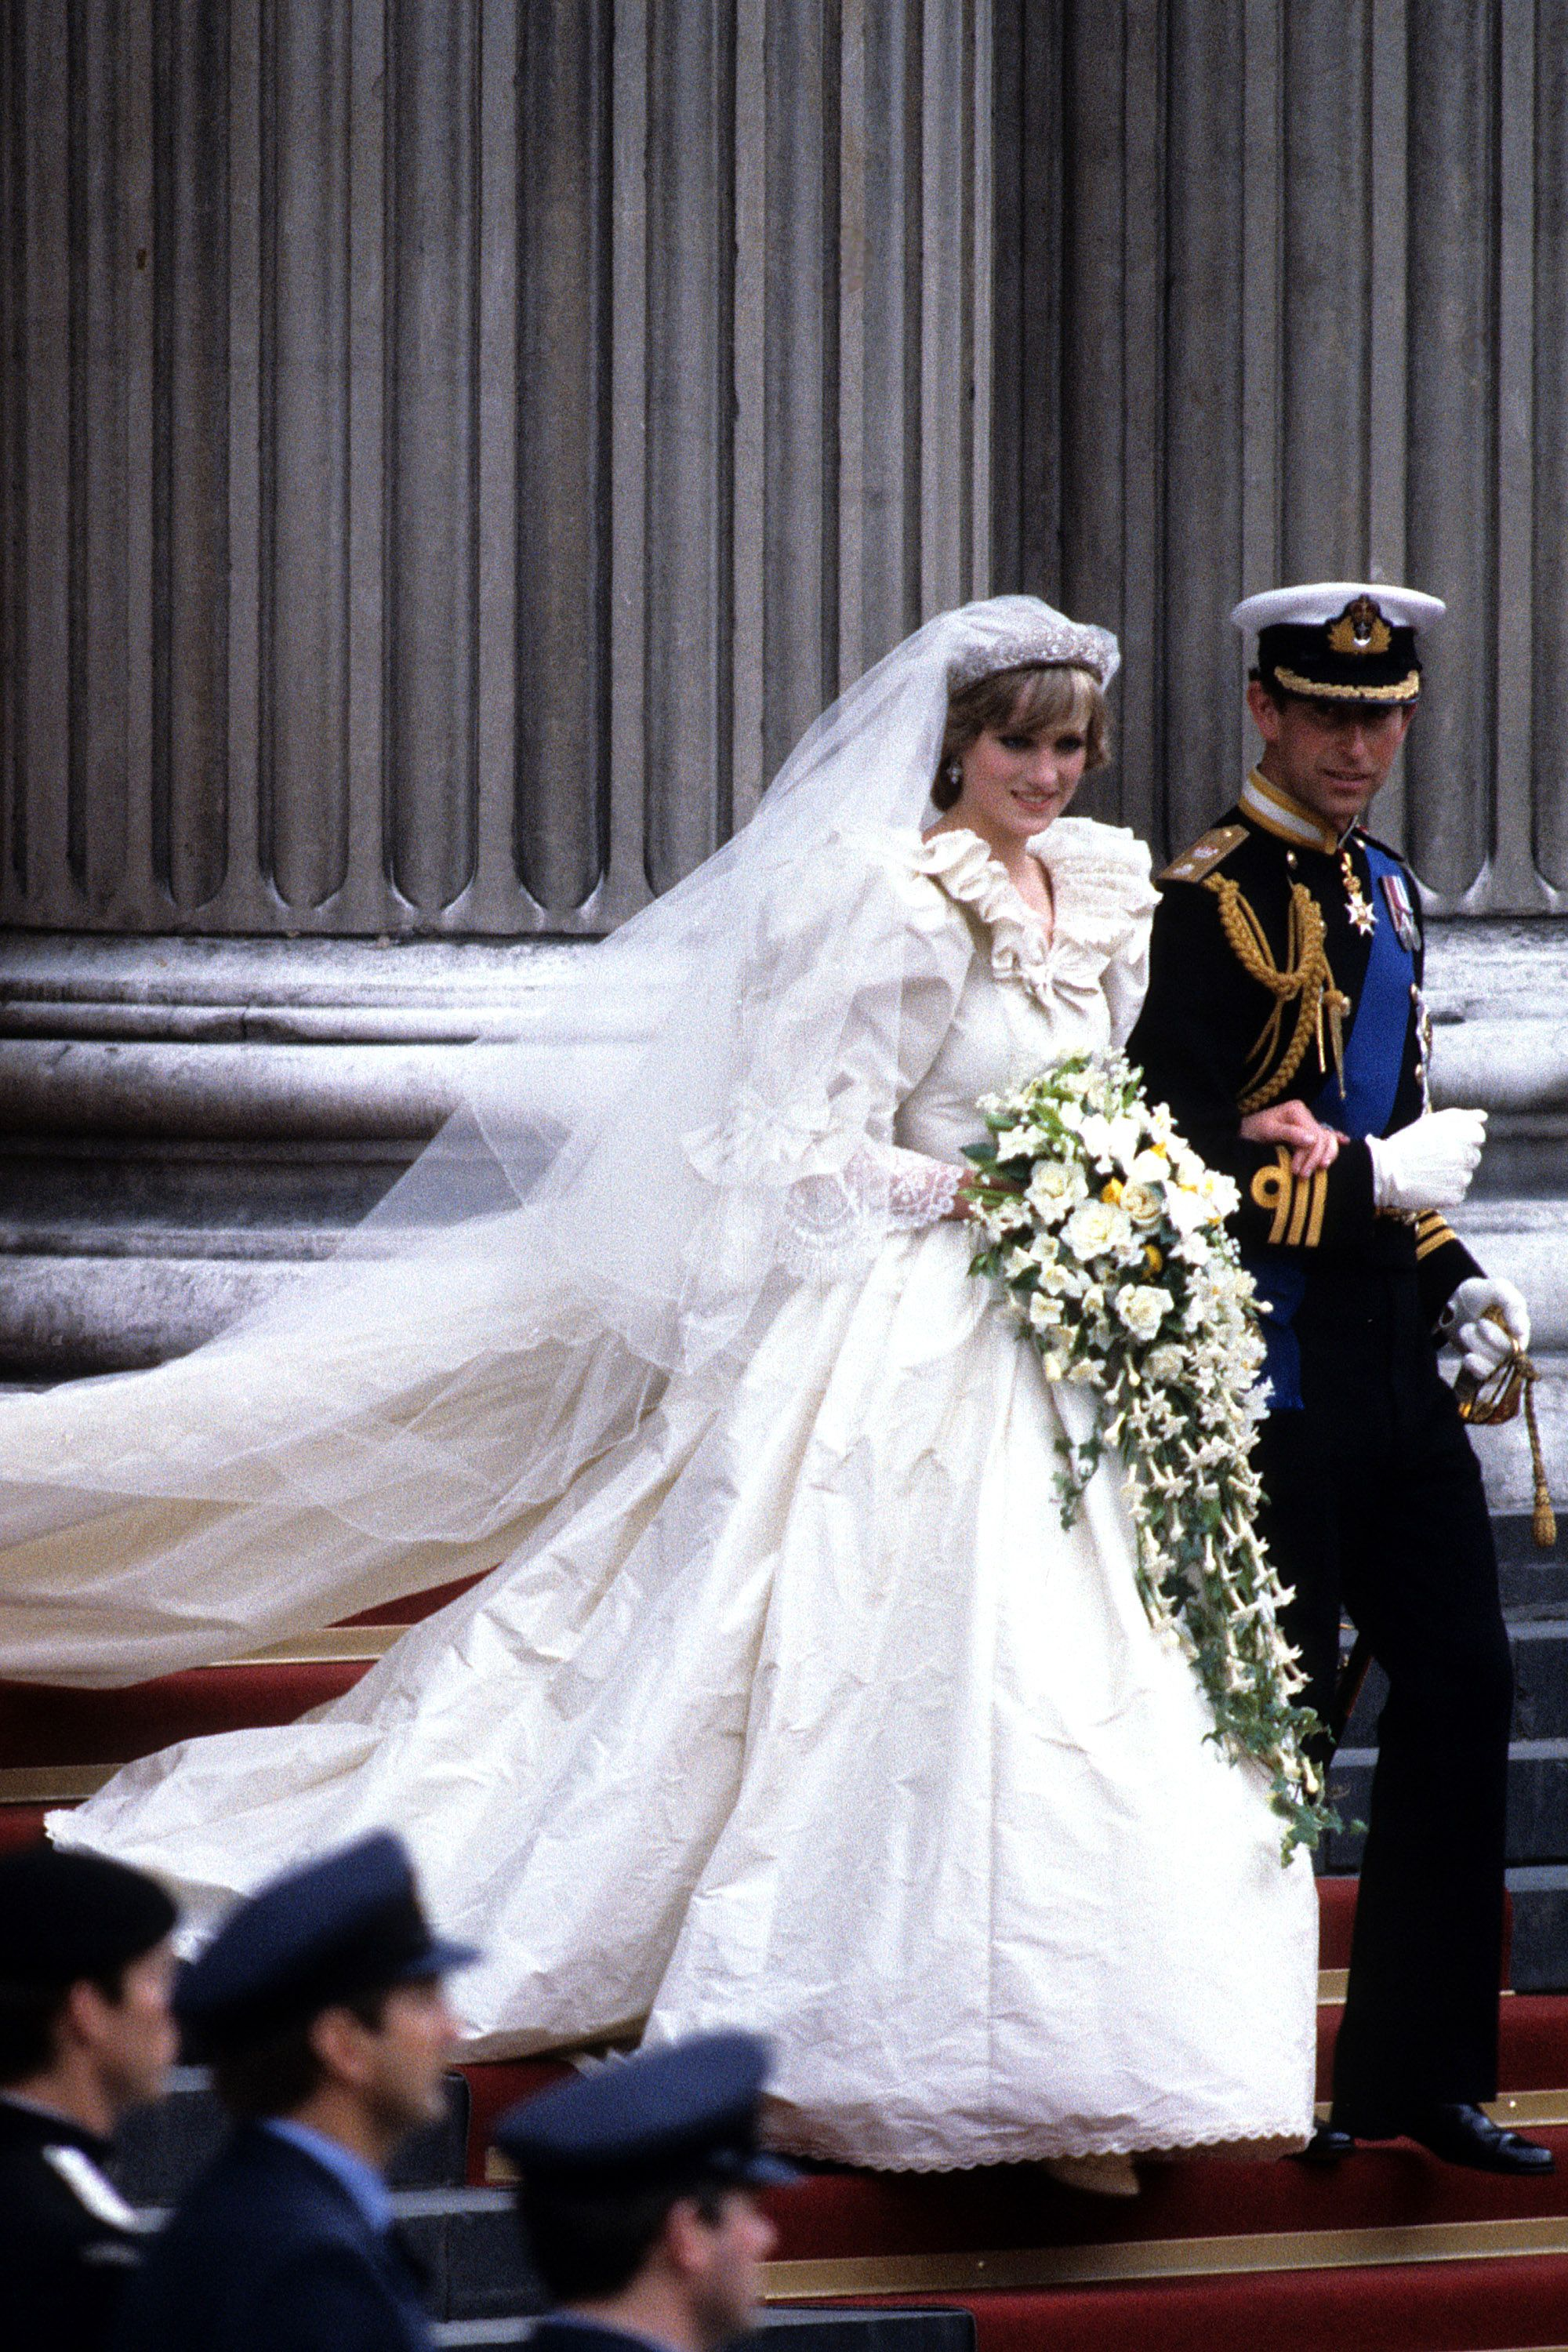 The Most Iconic Royal Wedding Gowns Of All Time Princess Diana Wedding Dress Princess Diana Wedding Diana Wedding Dress